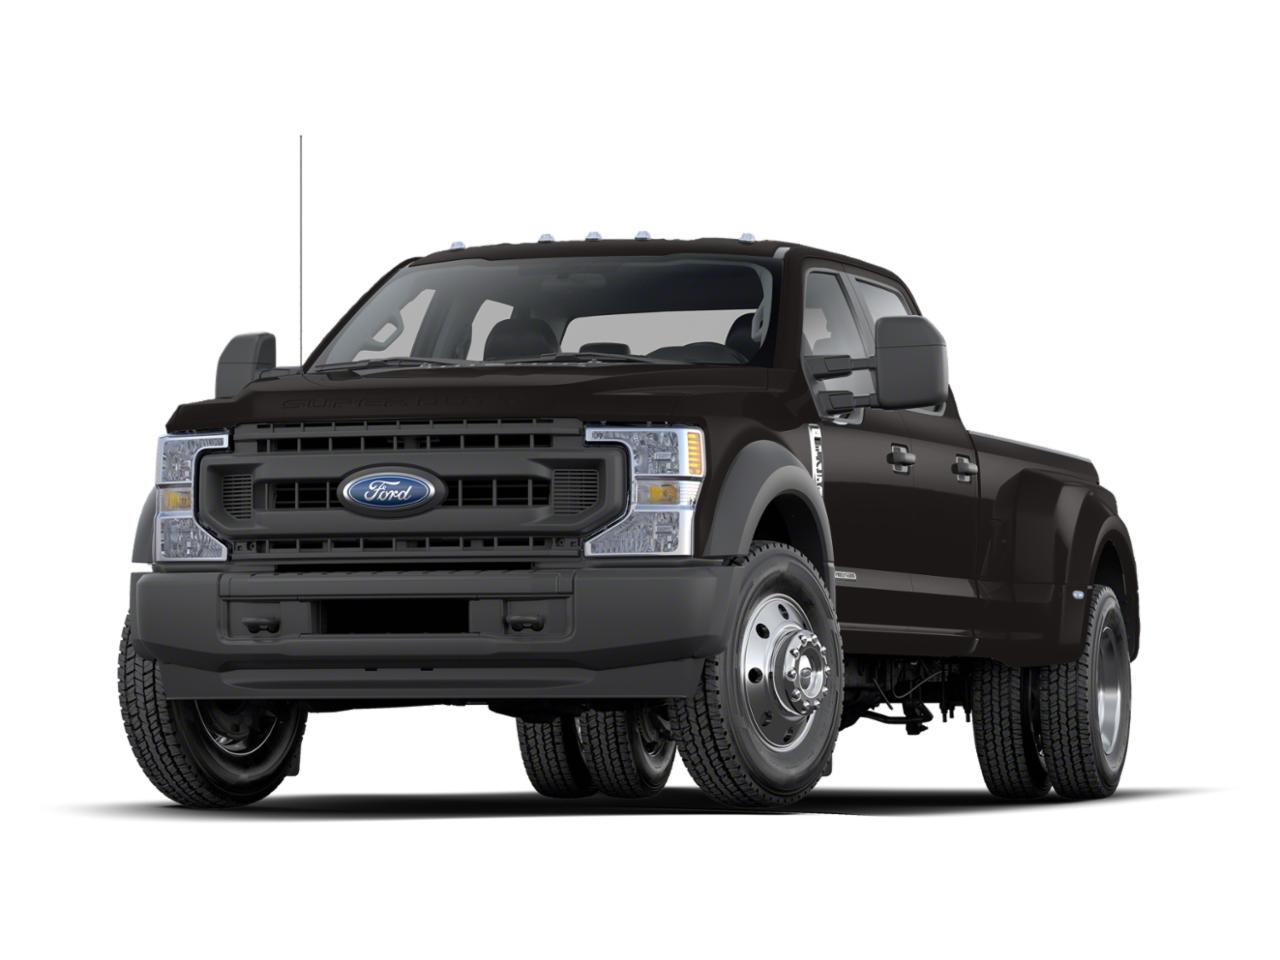 2020 Ford Super Duty F-450 DRW Vehicle Photo in Corpus Christi, TX 78411